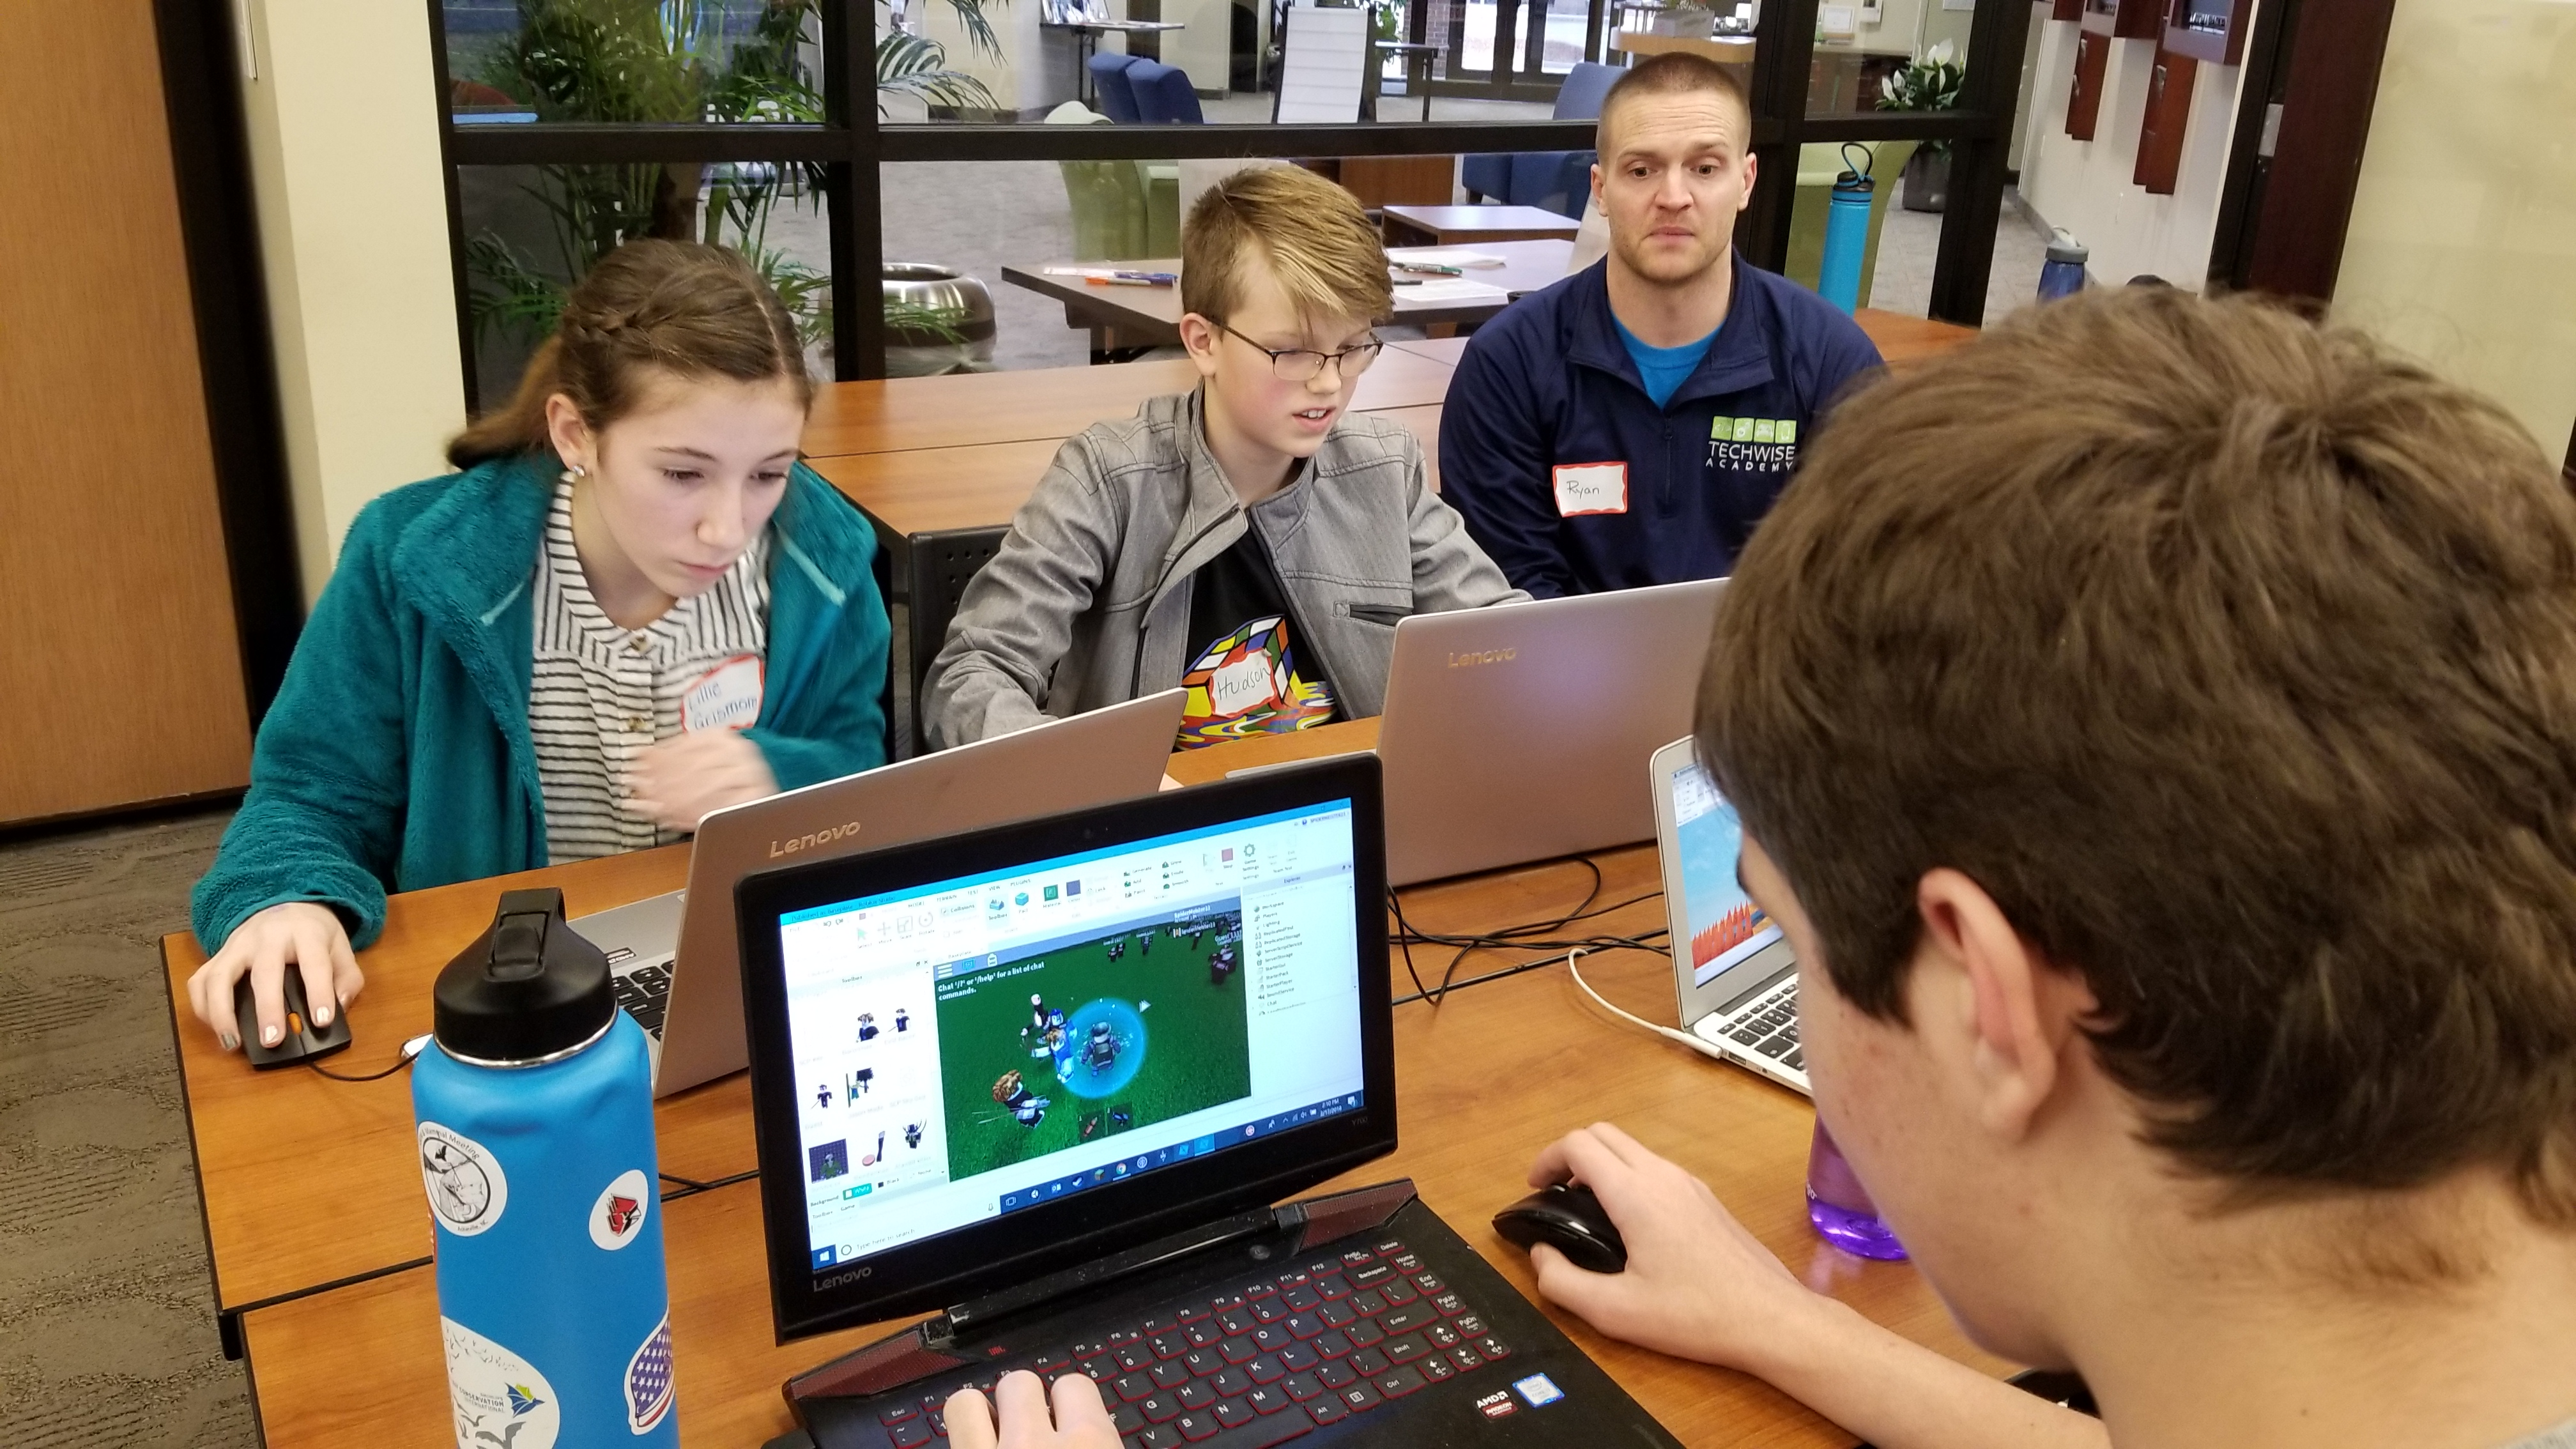 Students receiving instruction in Roblox